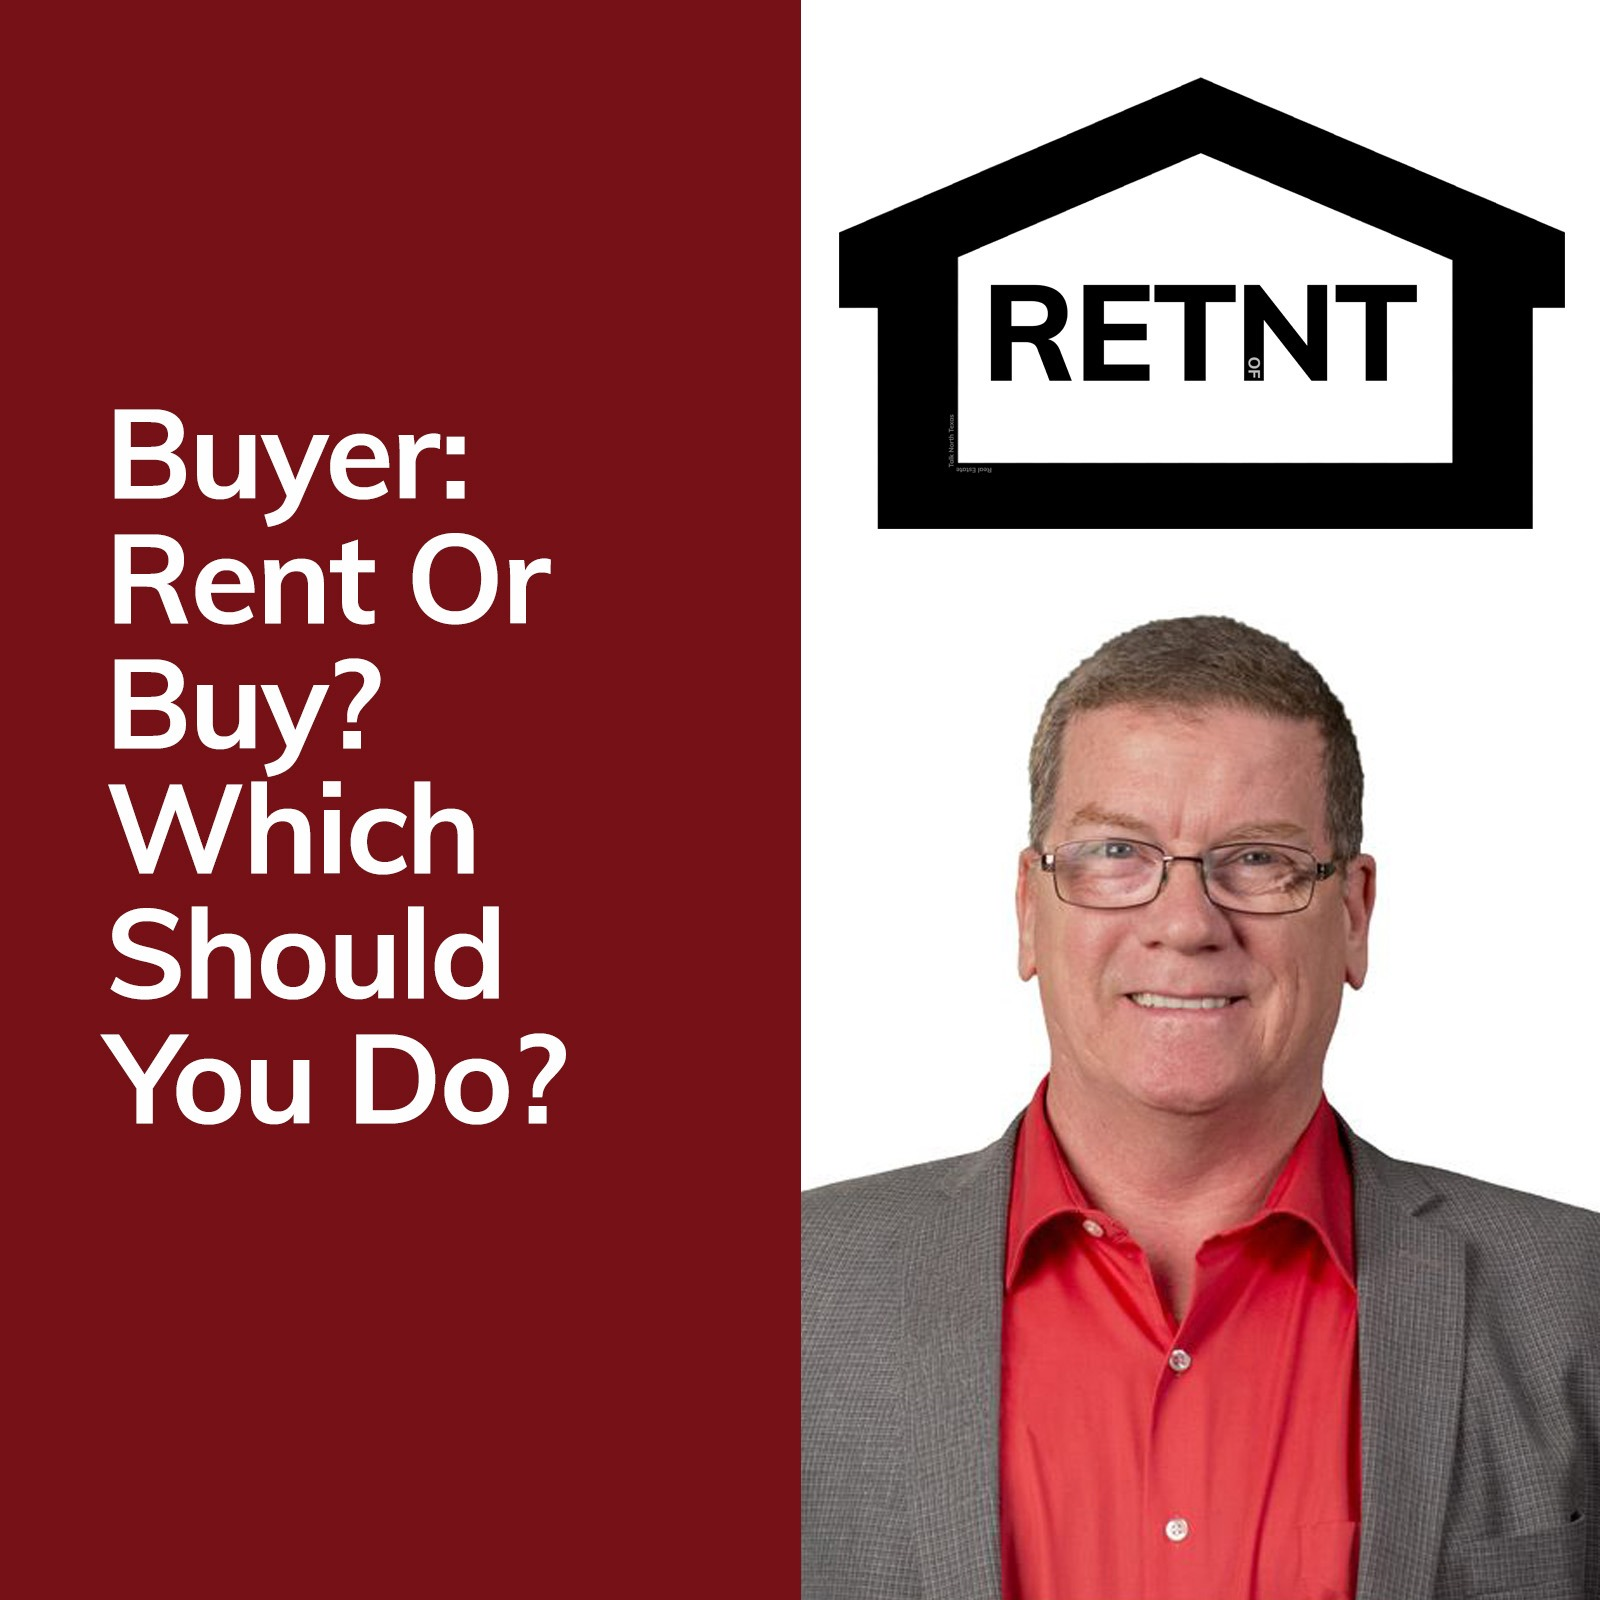 Rent or Buy? Which Should You Do?